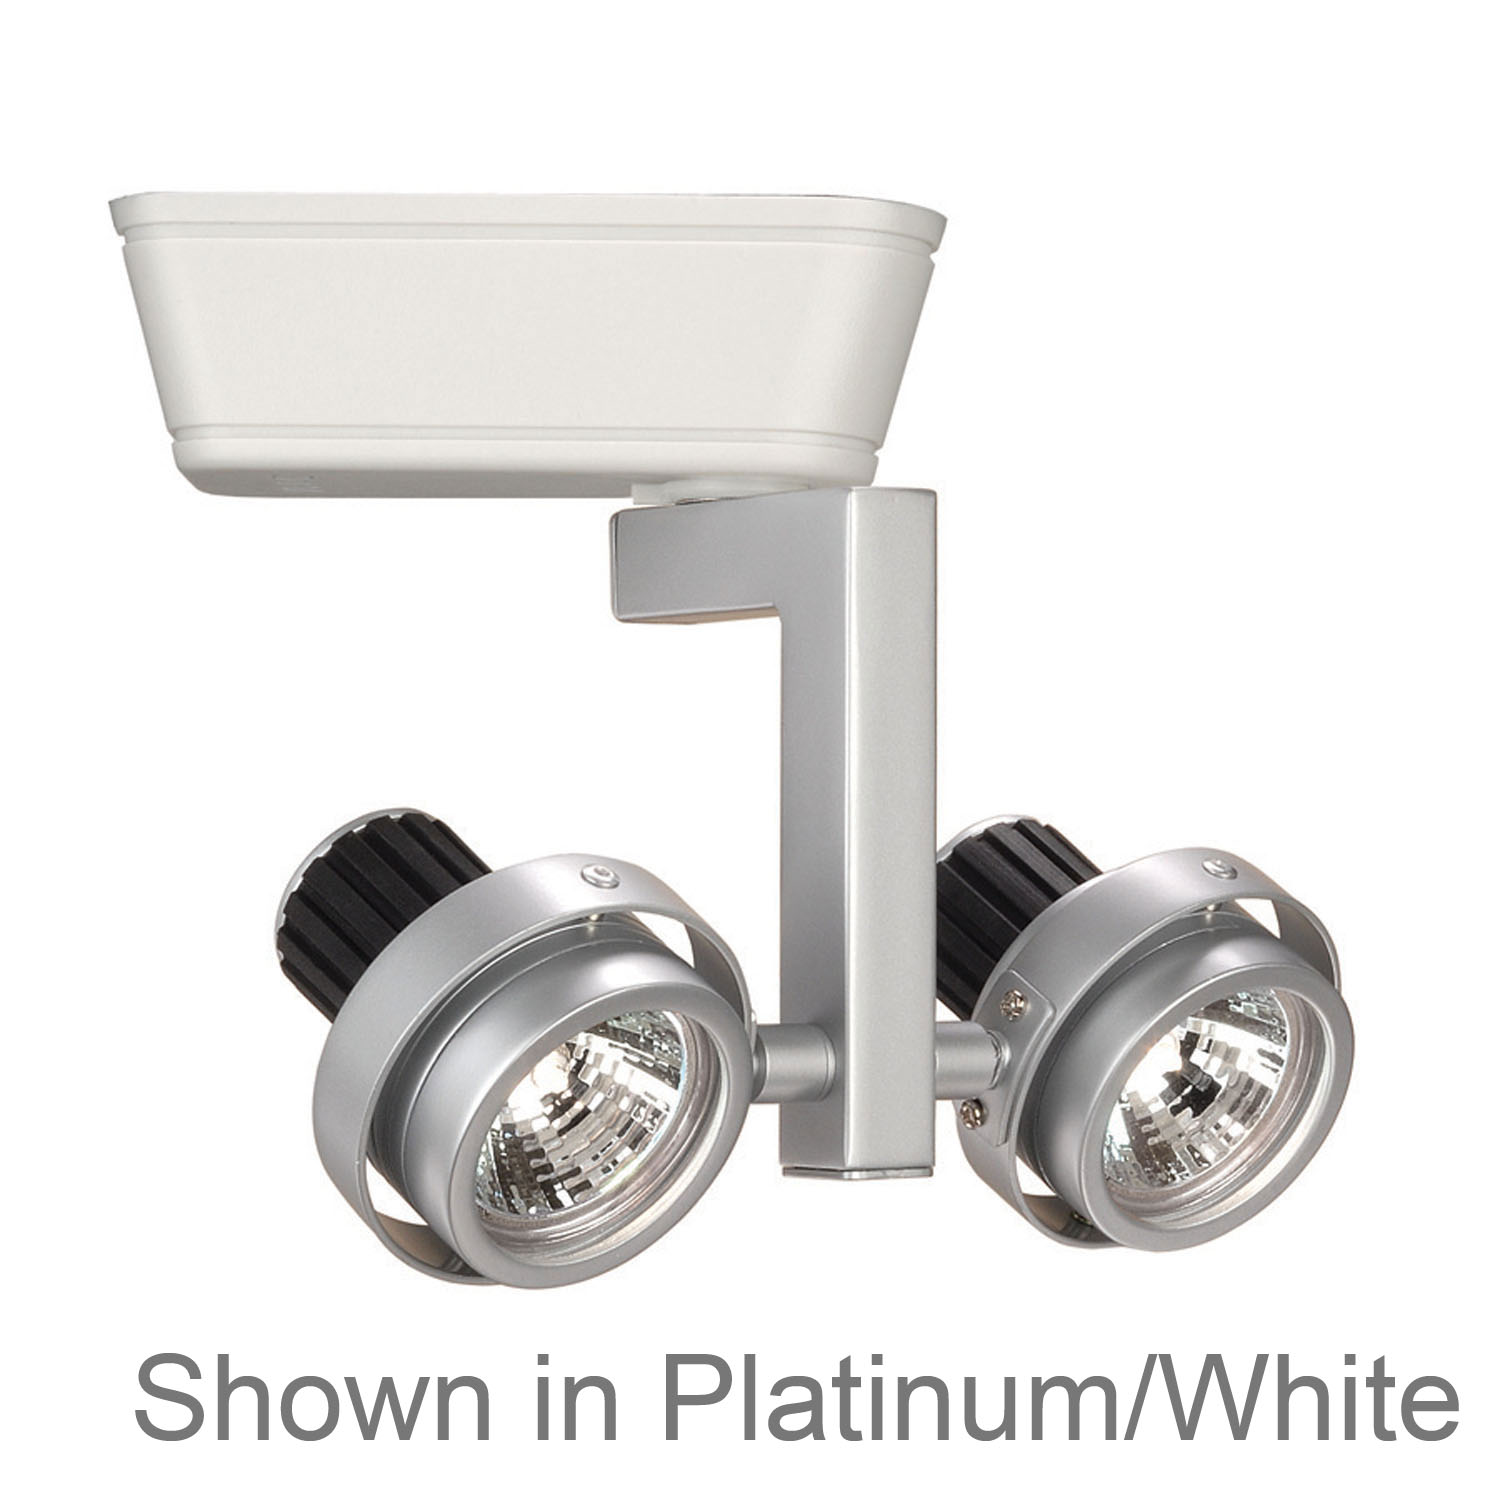 WAC Lighting 35W Double MR16 Premium Low Voltage Platinum Black L Series Track Head